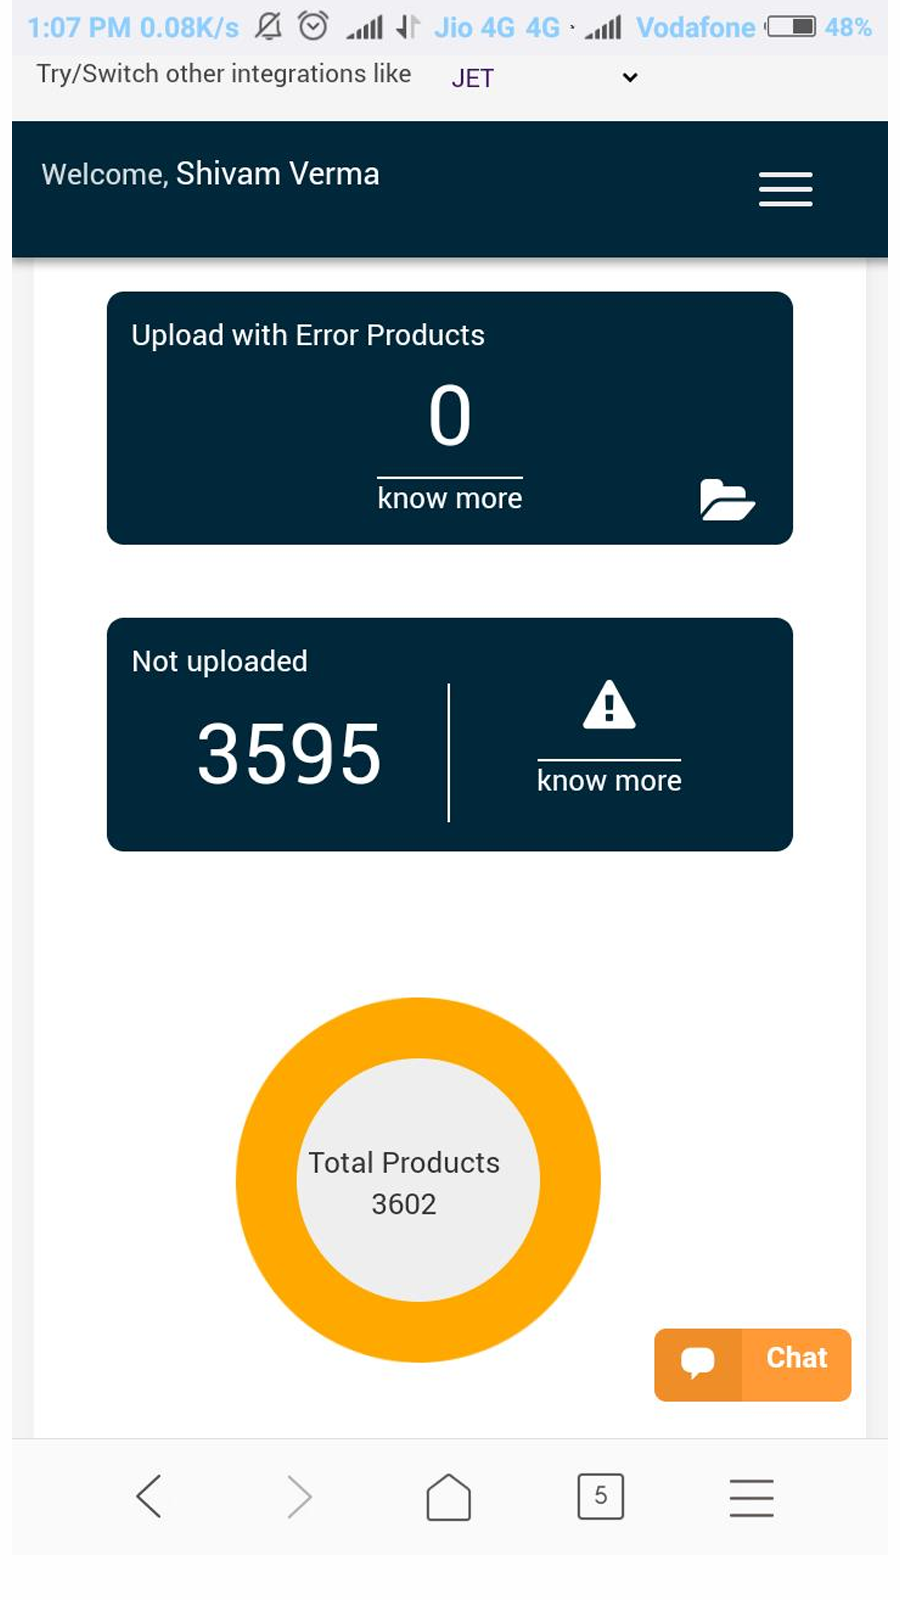 Total number of products